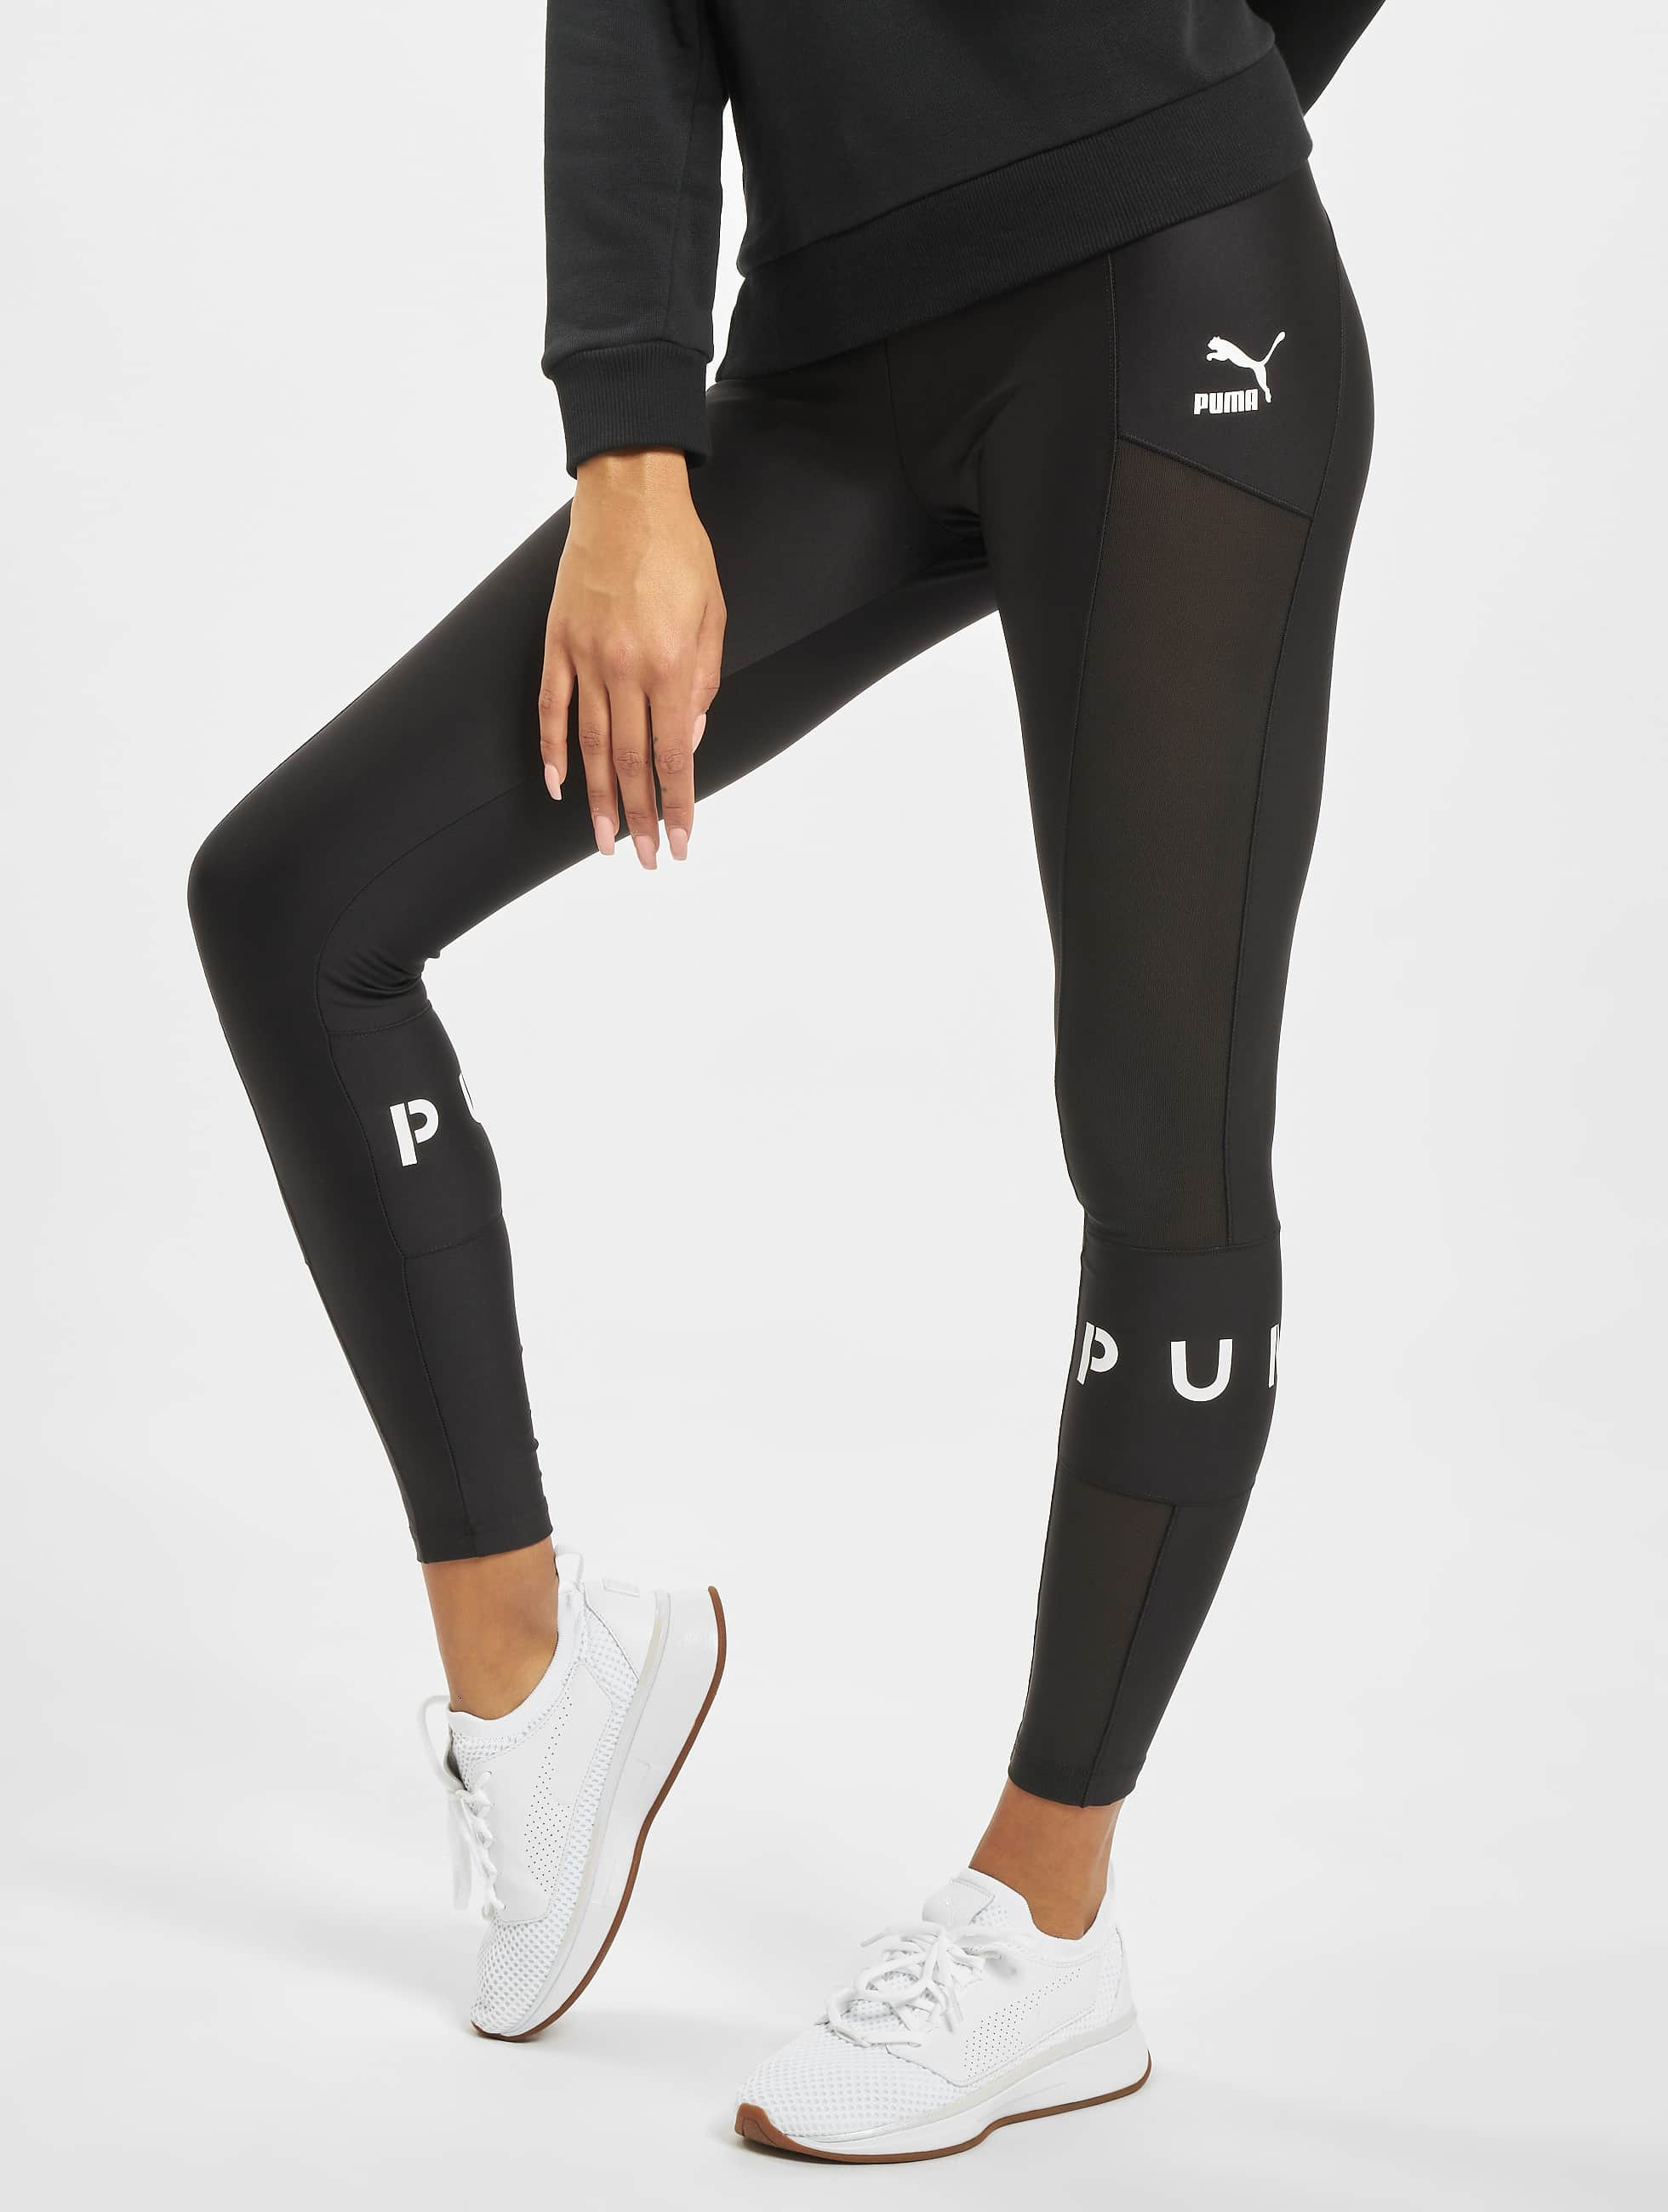 Puma Puma XTG Leggings Puma Black